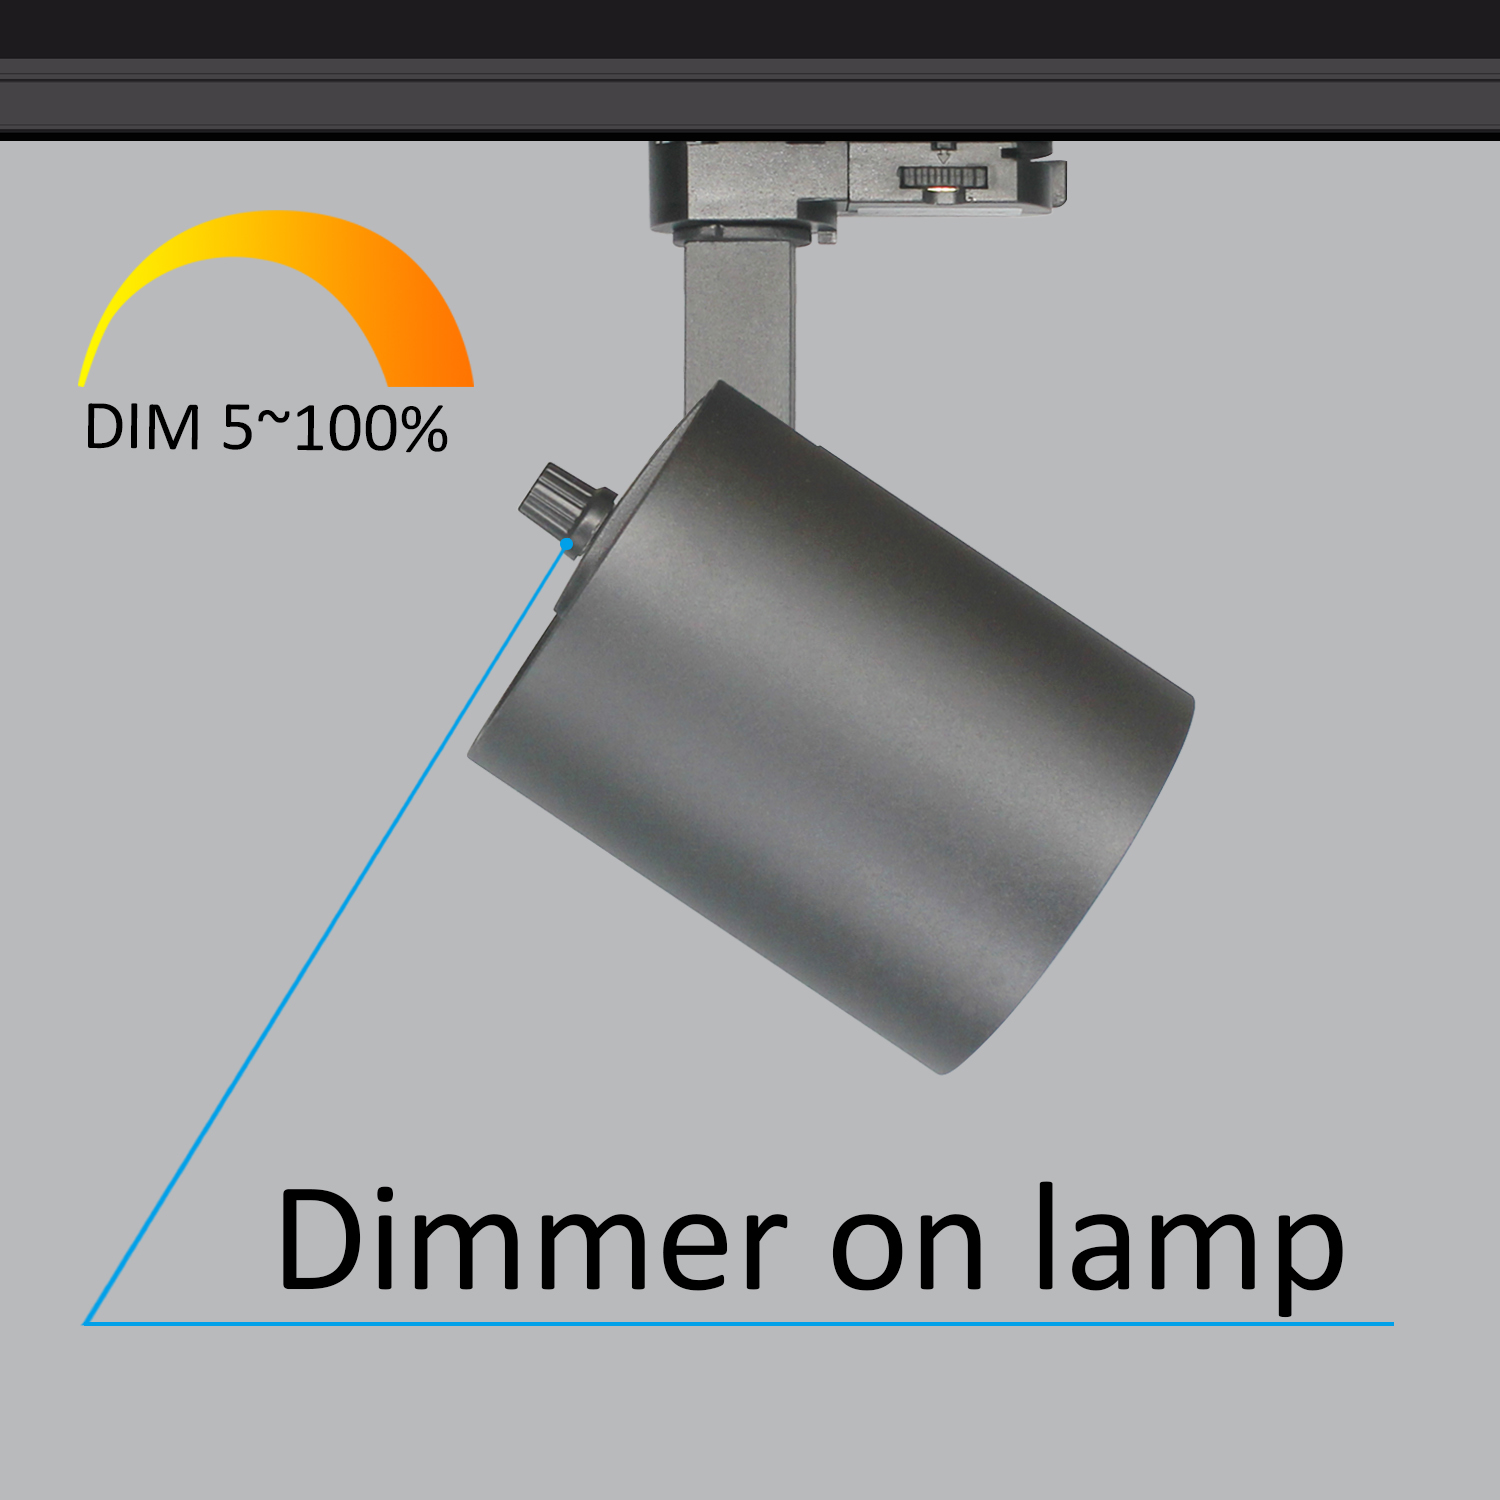 TLU-A Dimmer on Lamp